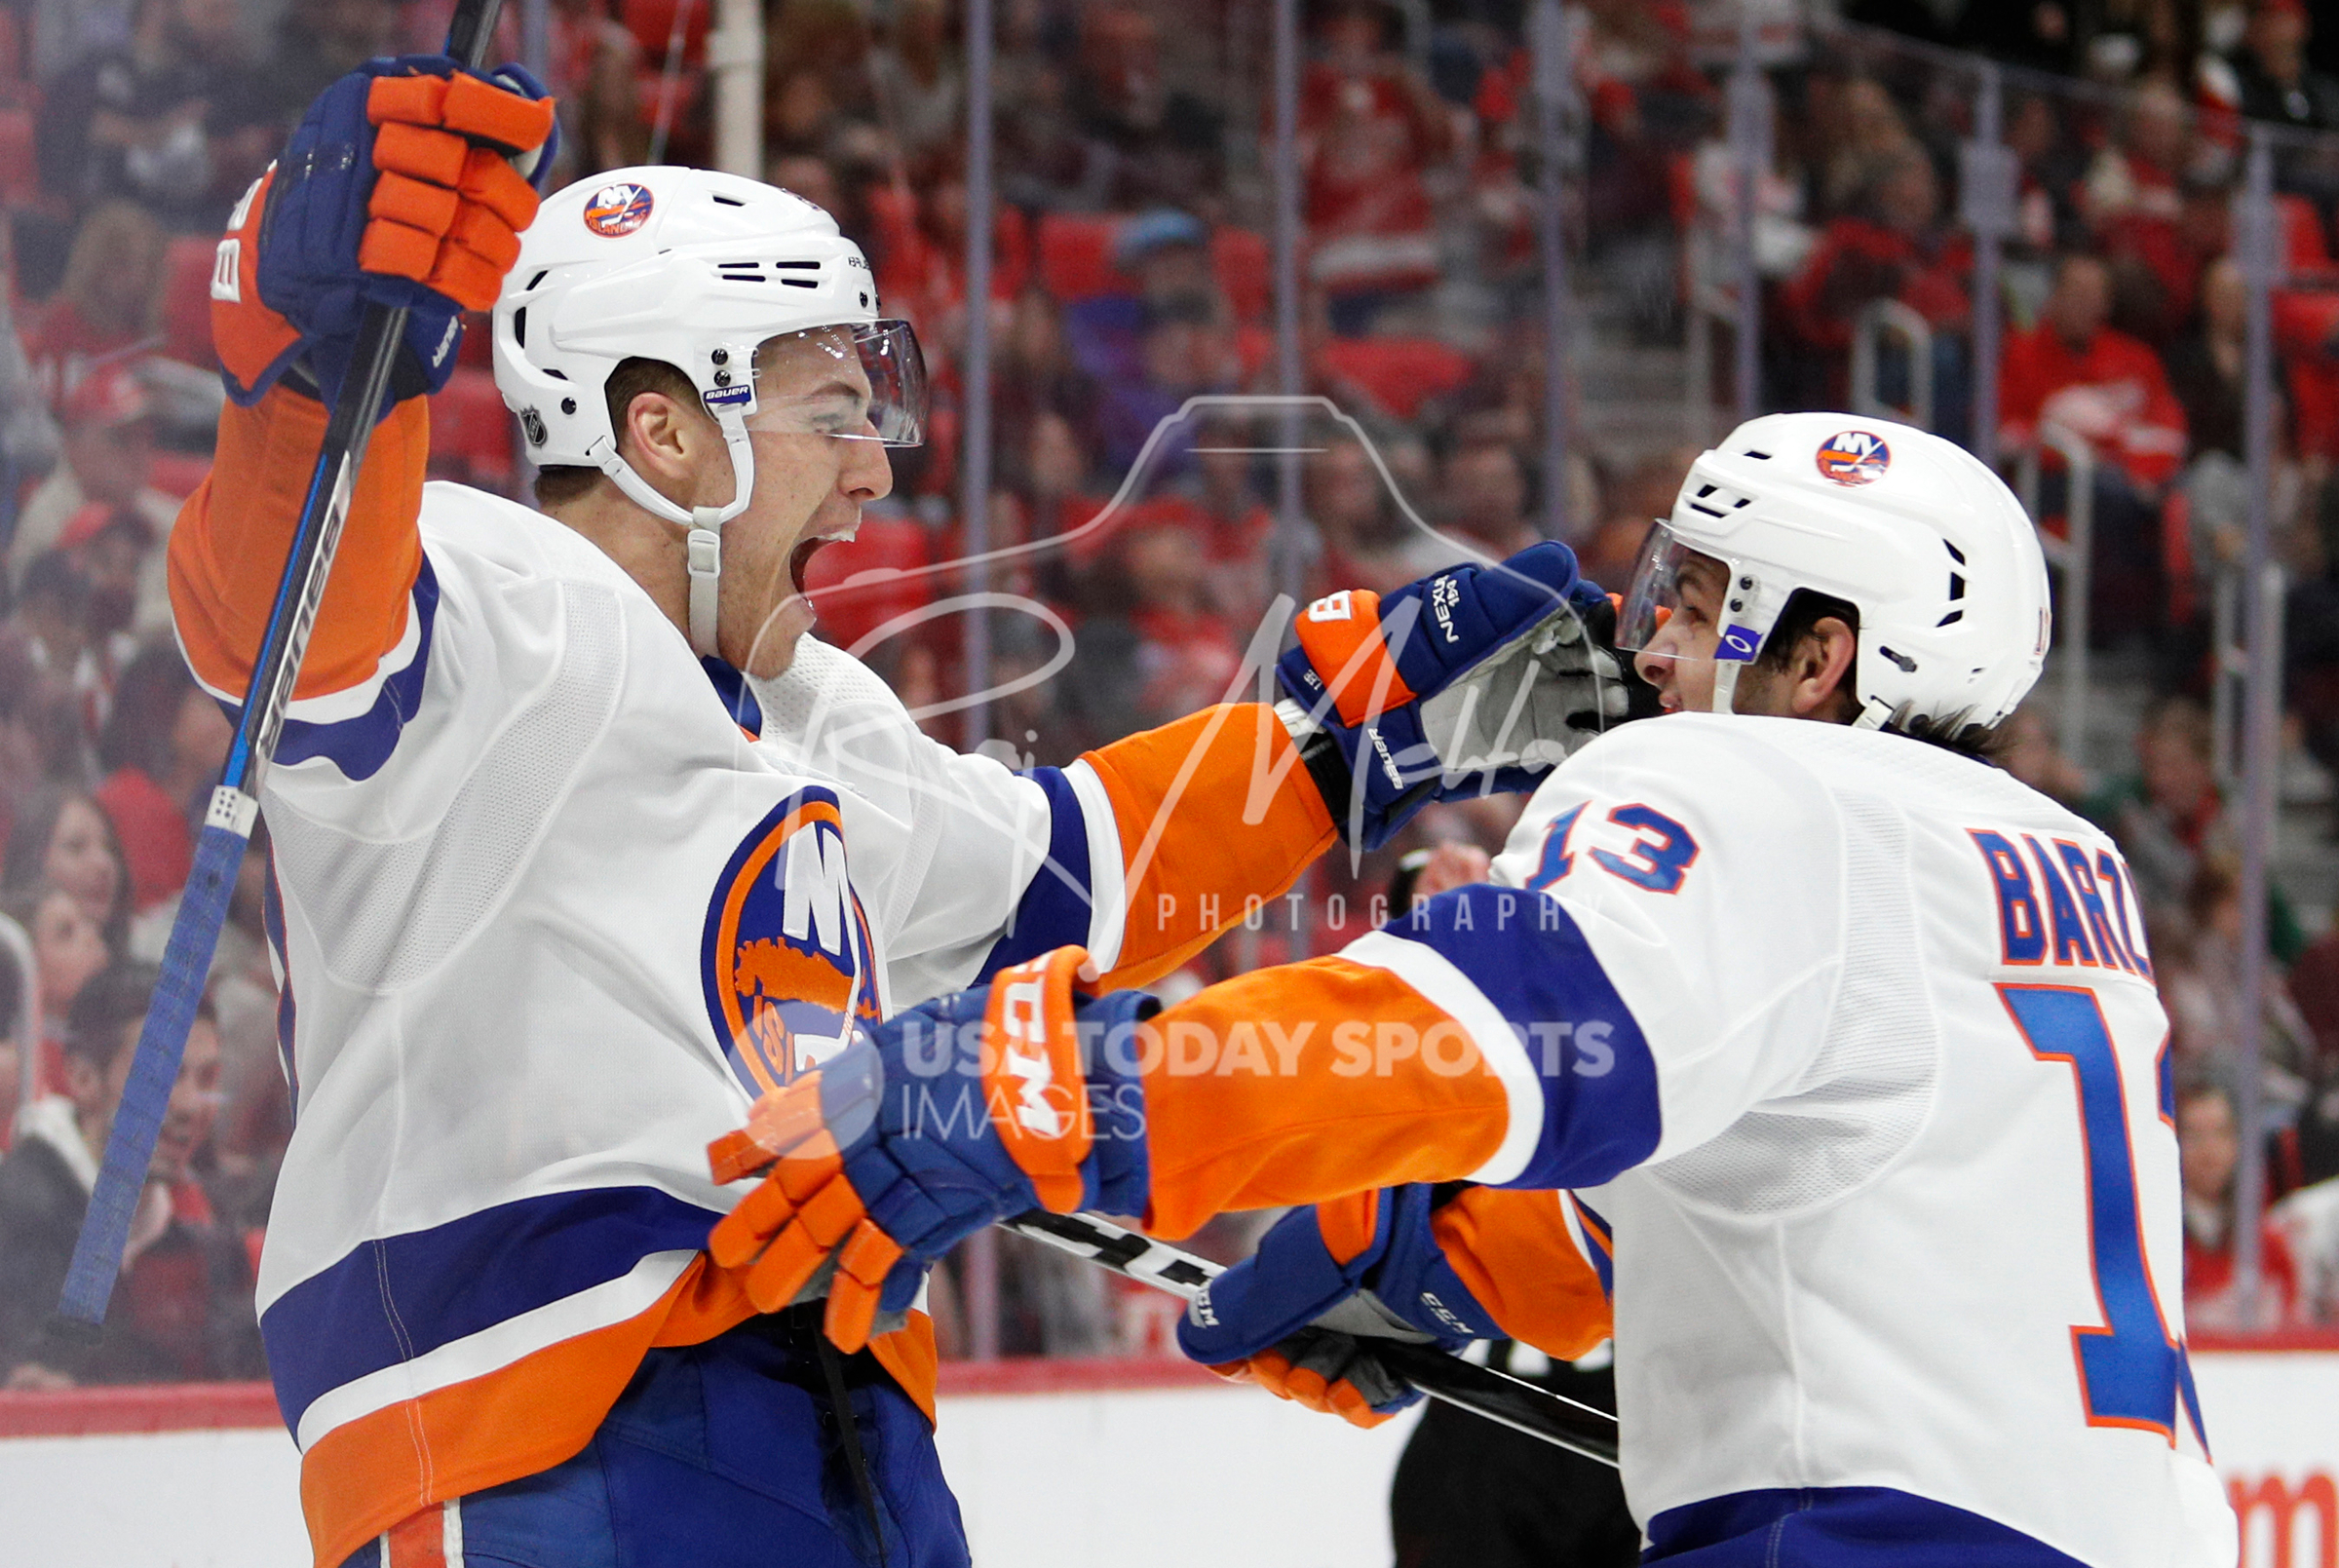 Apr 7, 2018; Detroit, MI, USA; New York Islanders left wing Anders Lee (27) celebrates with center Mathew Barzal (13) after scoring a goal during the third period against the Detroit Red Wings at Little Caesars Arena. Mandatory Credit: Raj Mehta-USA TODAY Sports